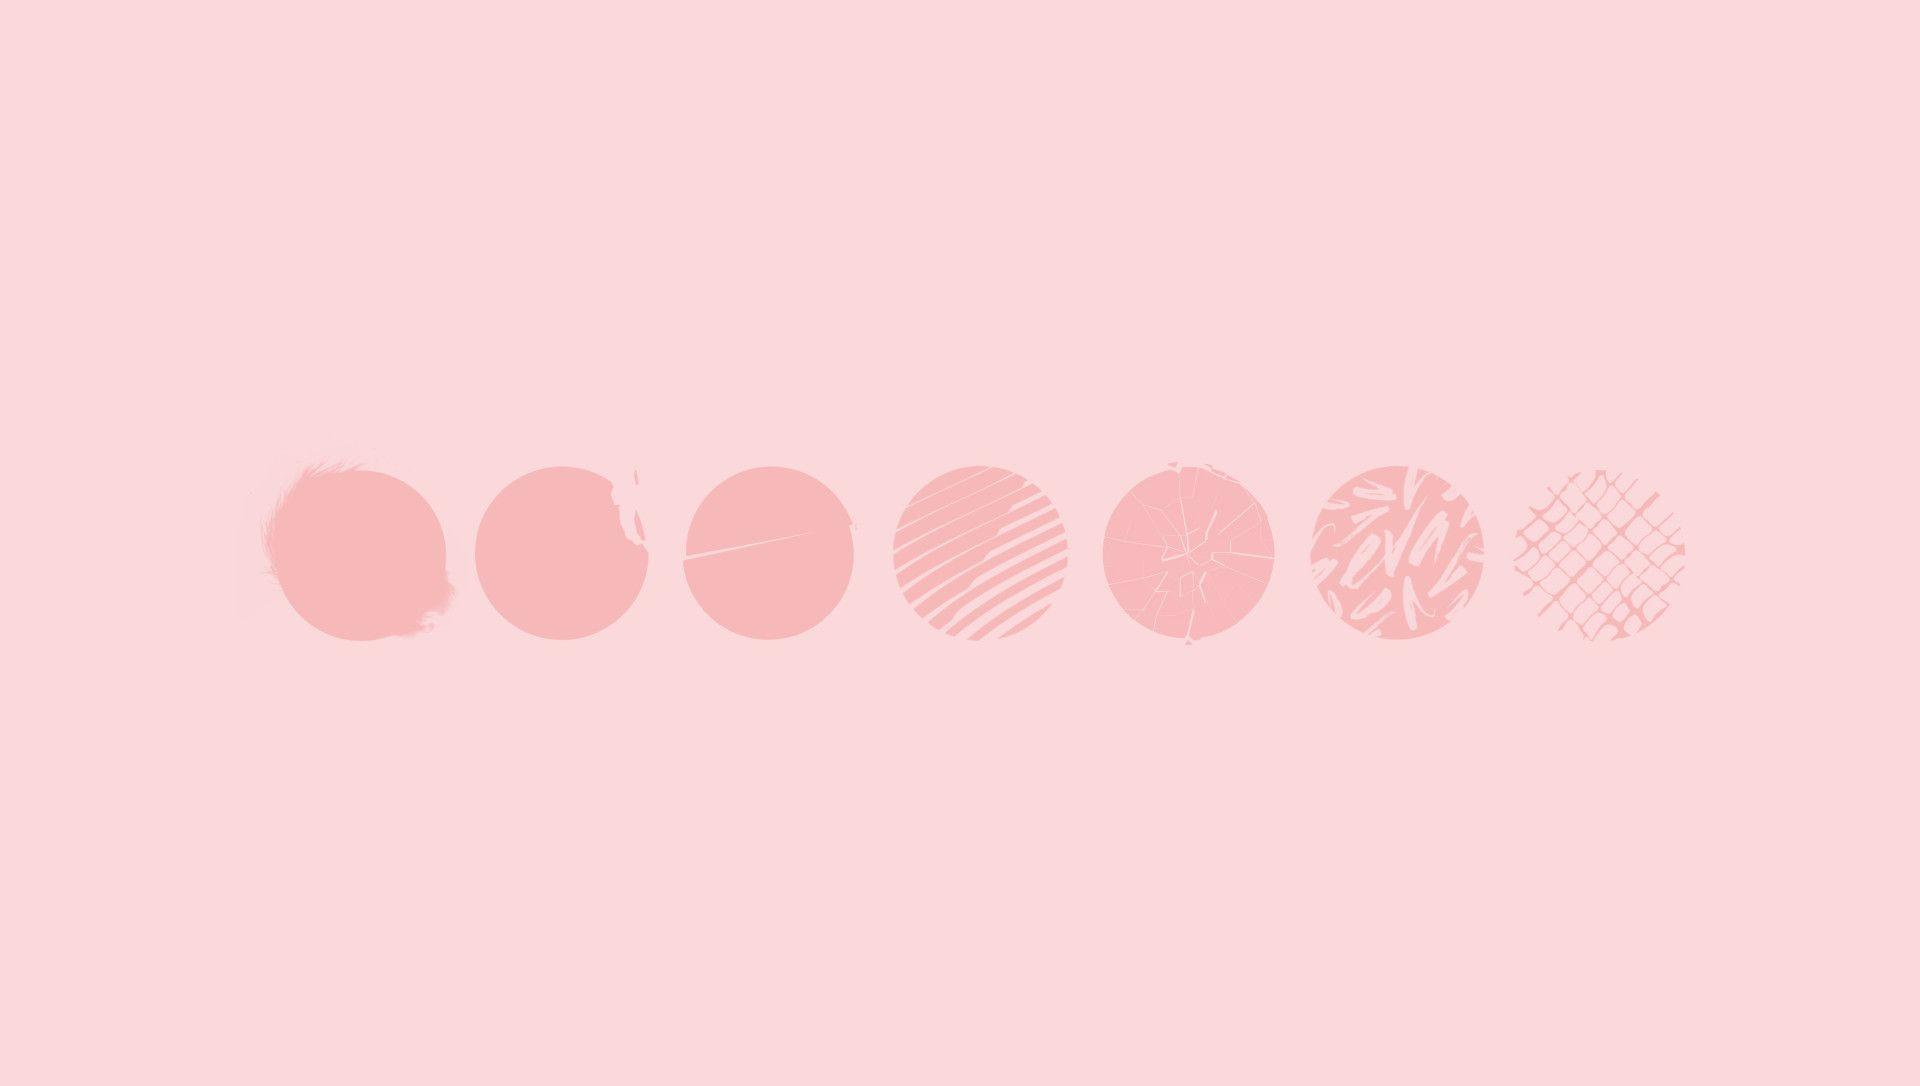 Aesthetic Pastel Pink Background Hd Cuteanimals